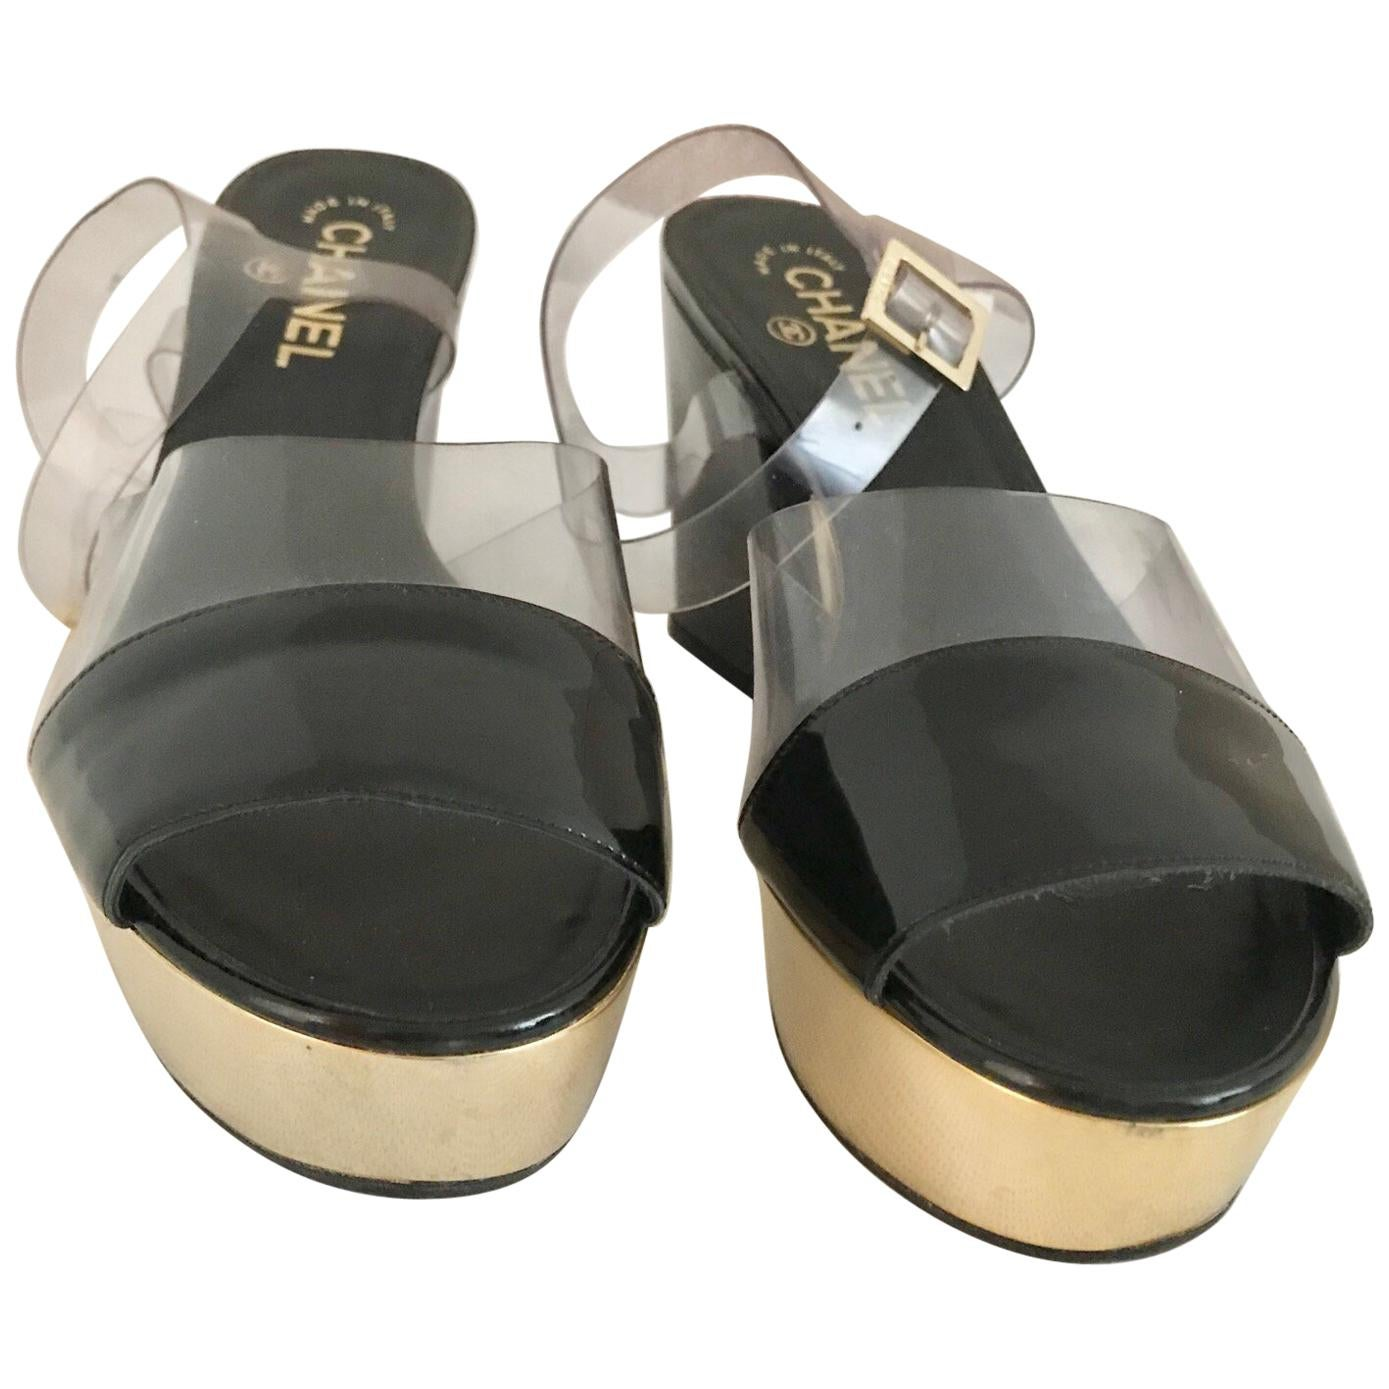 e40bab866eee Vintage Chanel Shoes - 129 For Sale at 1stdibs